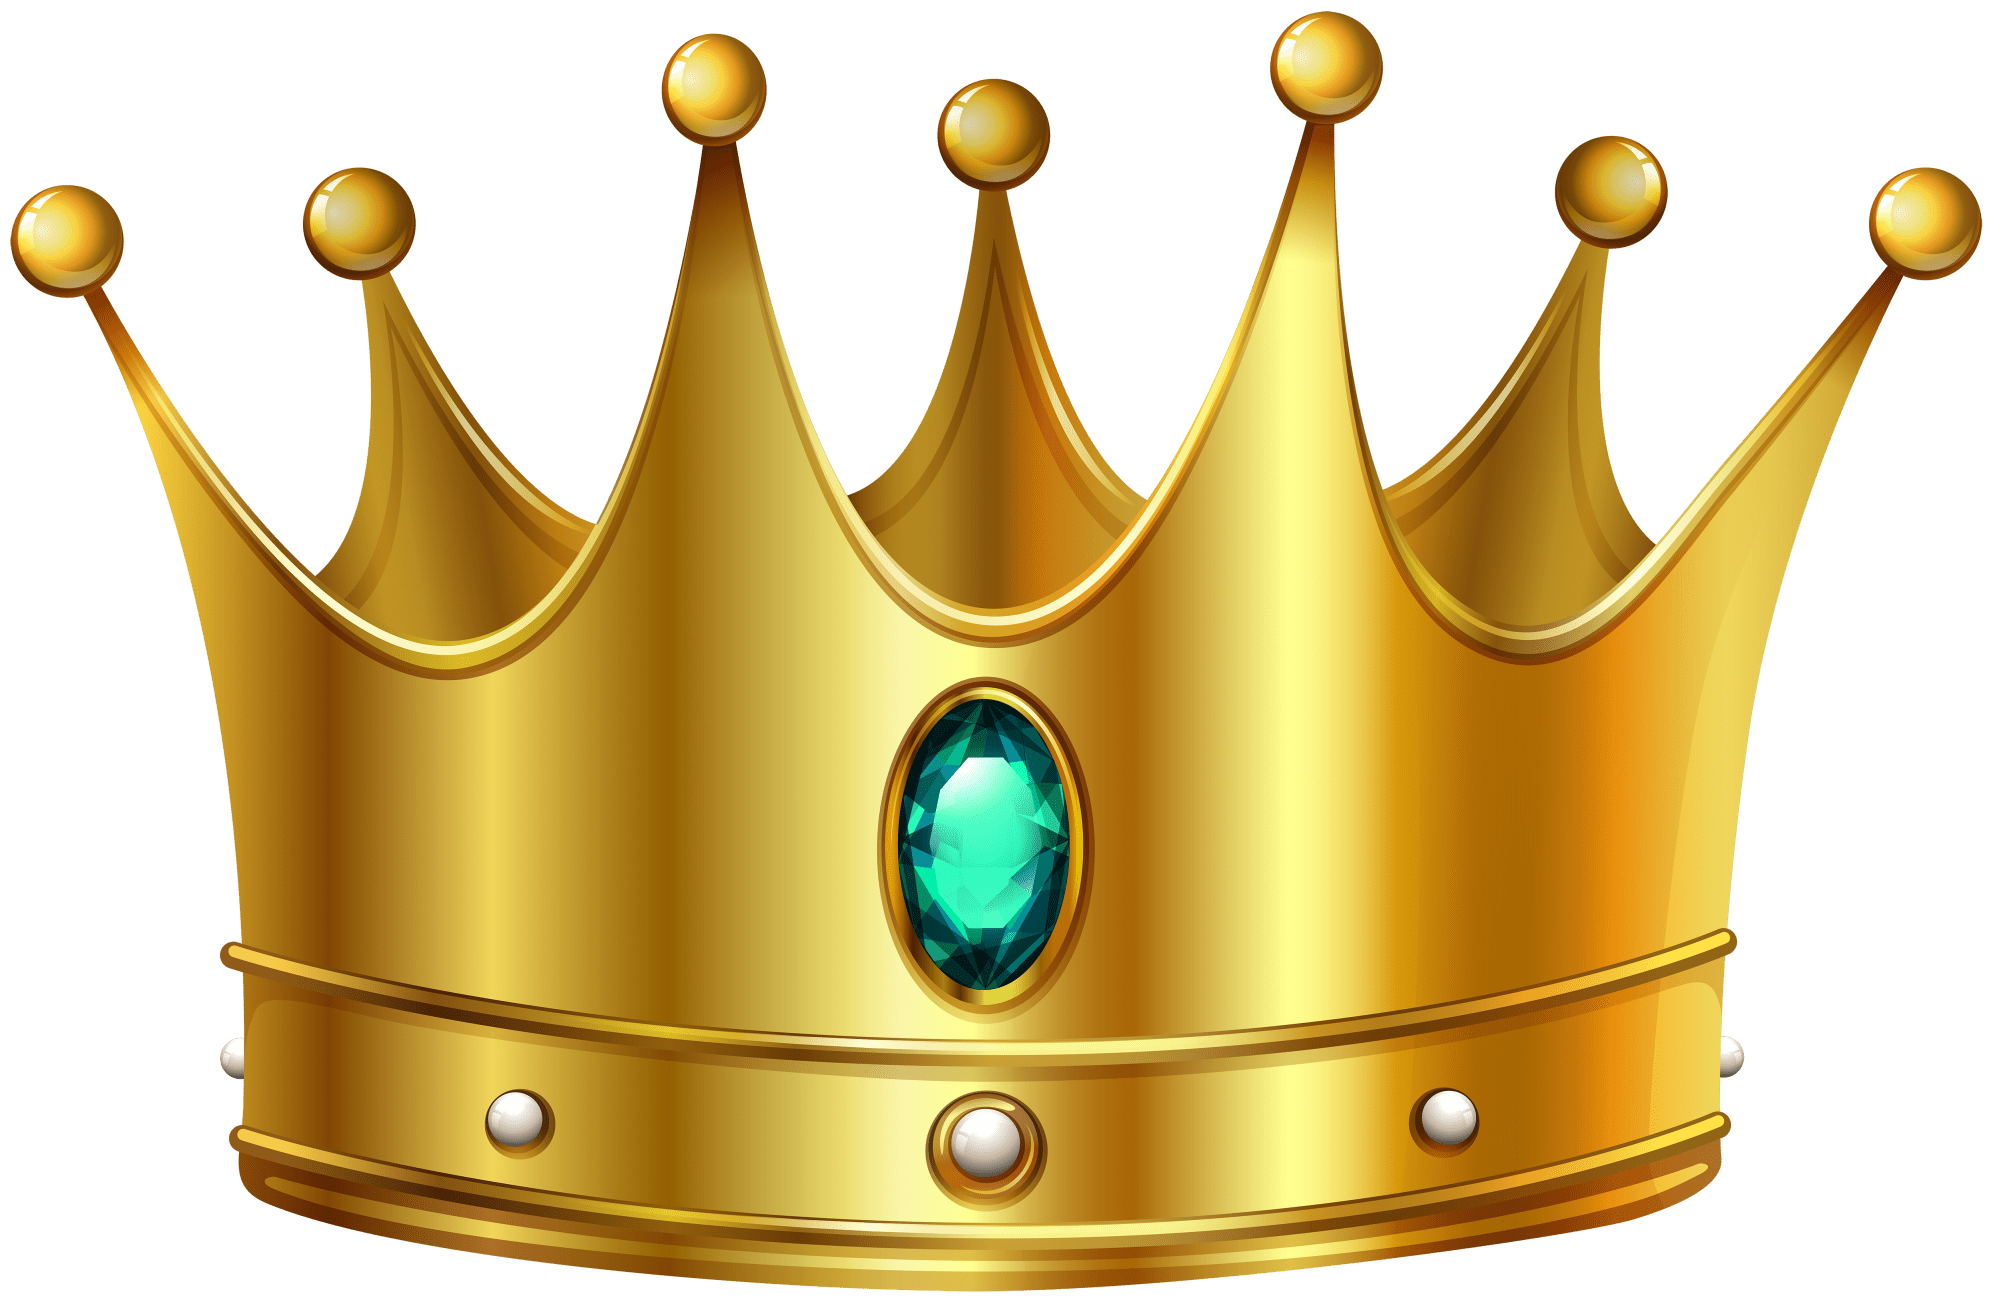 hight resolution of 5000x3287 gold crown with diamond png clip art imageu200b gallery yopriceville